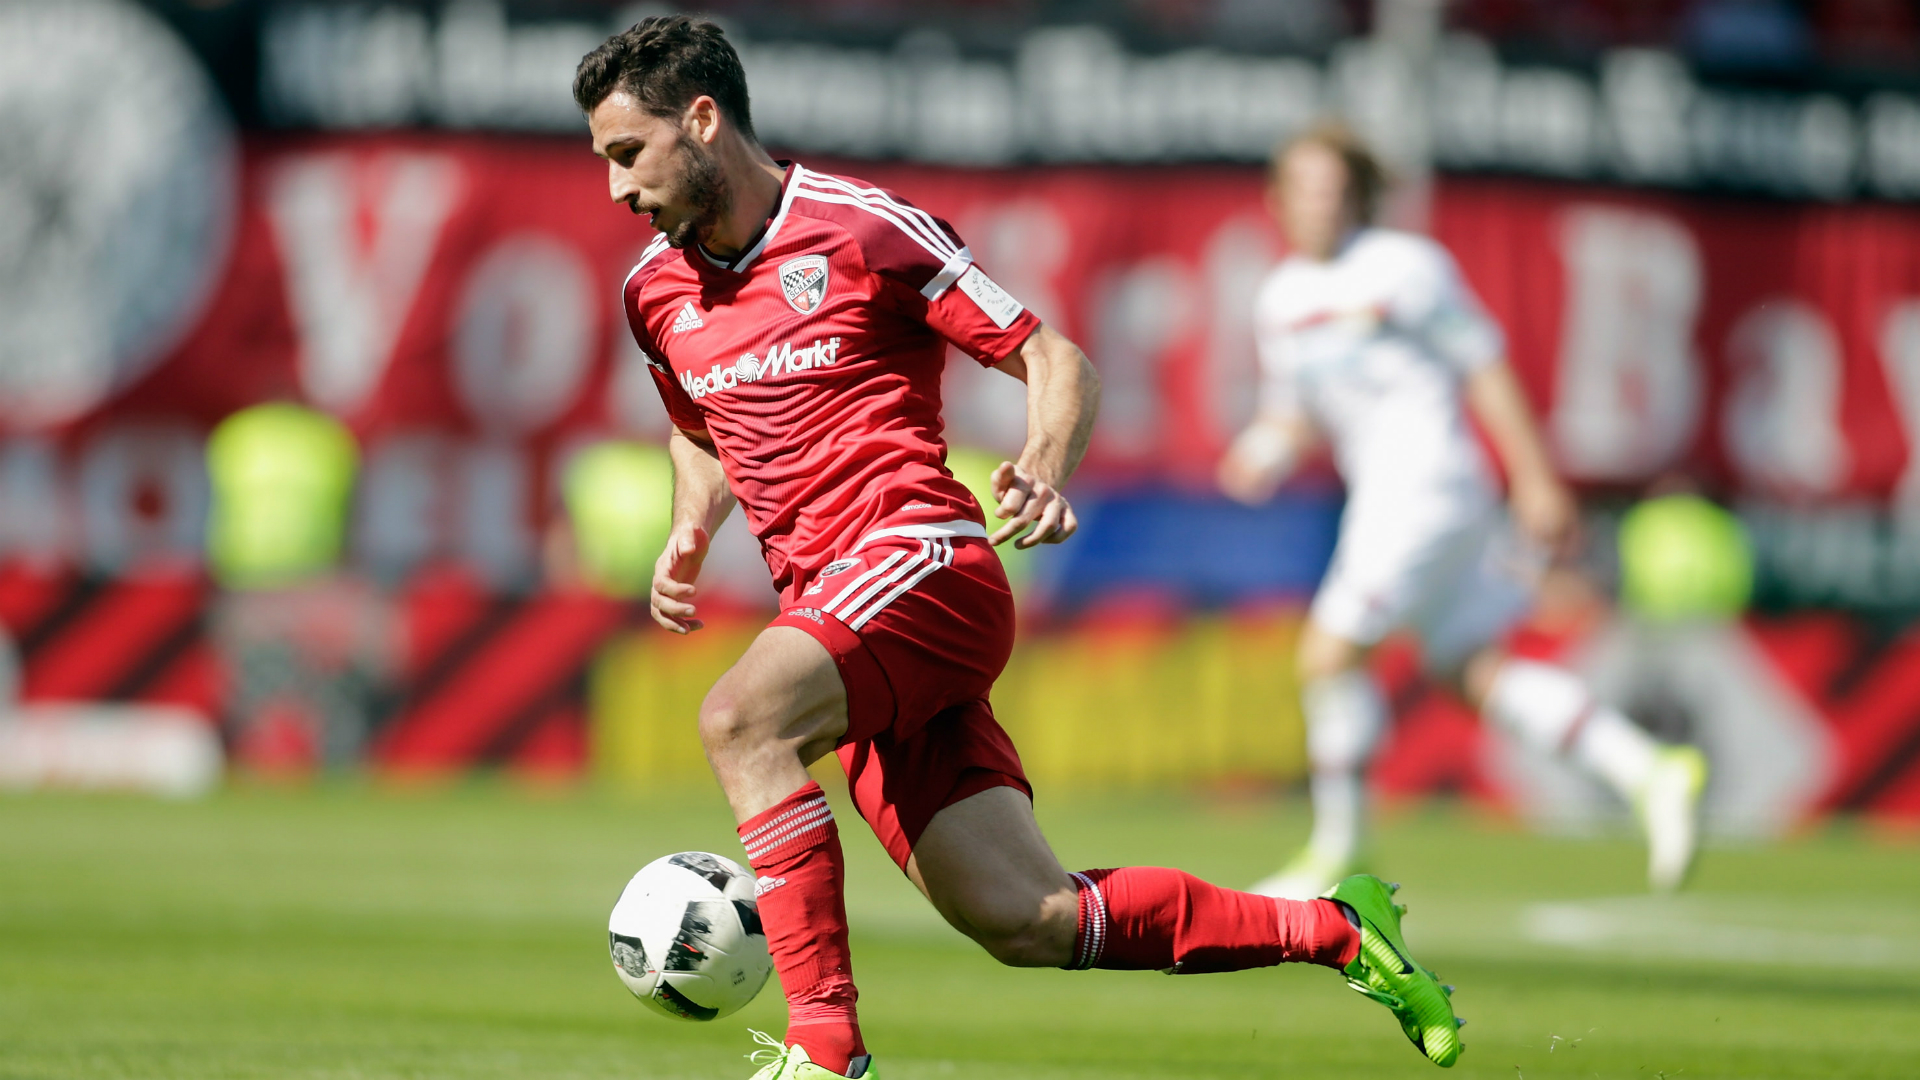 Mathew Leckie joins Hertha Berlin from Ingoldstadt